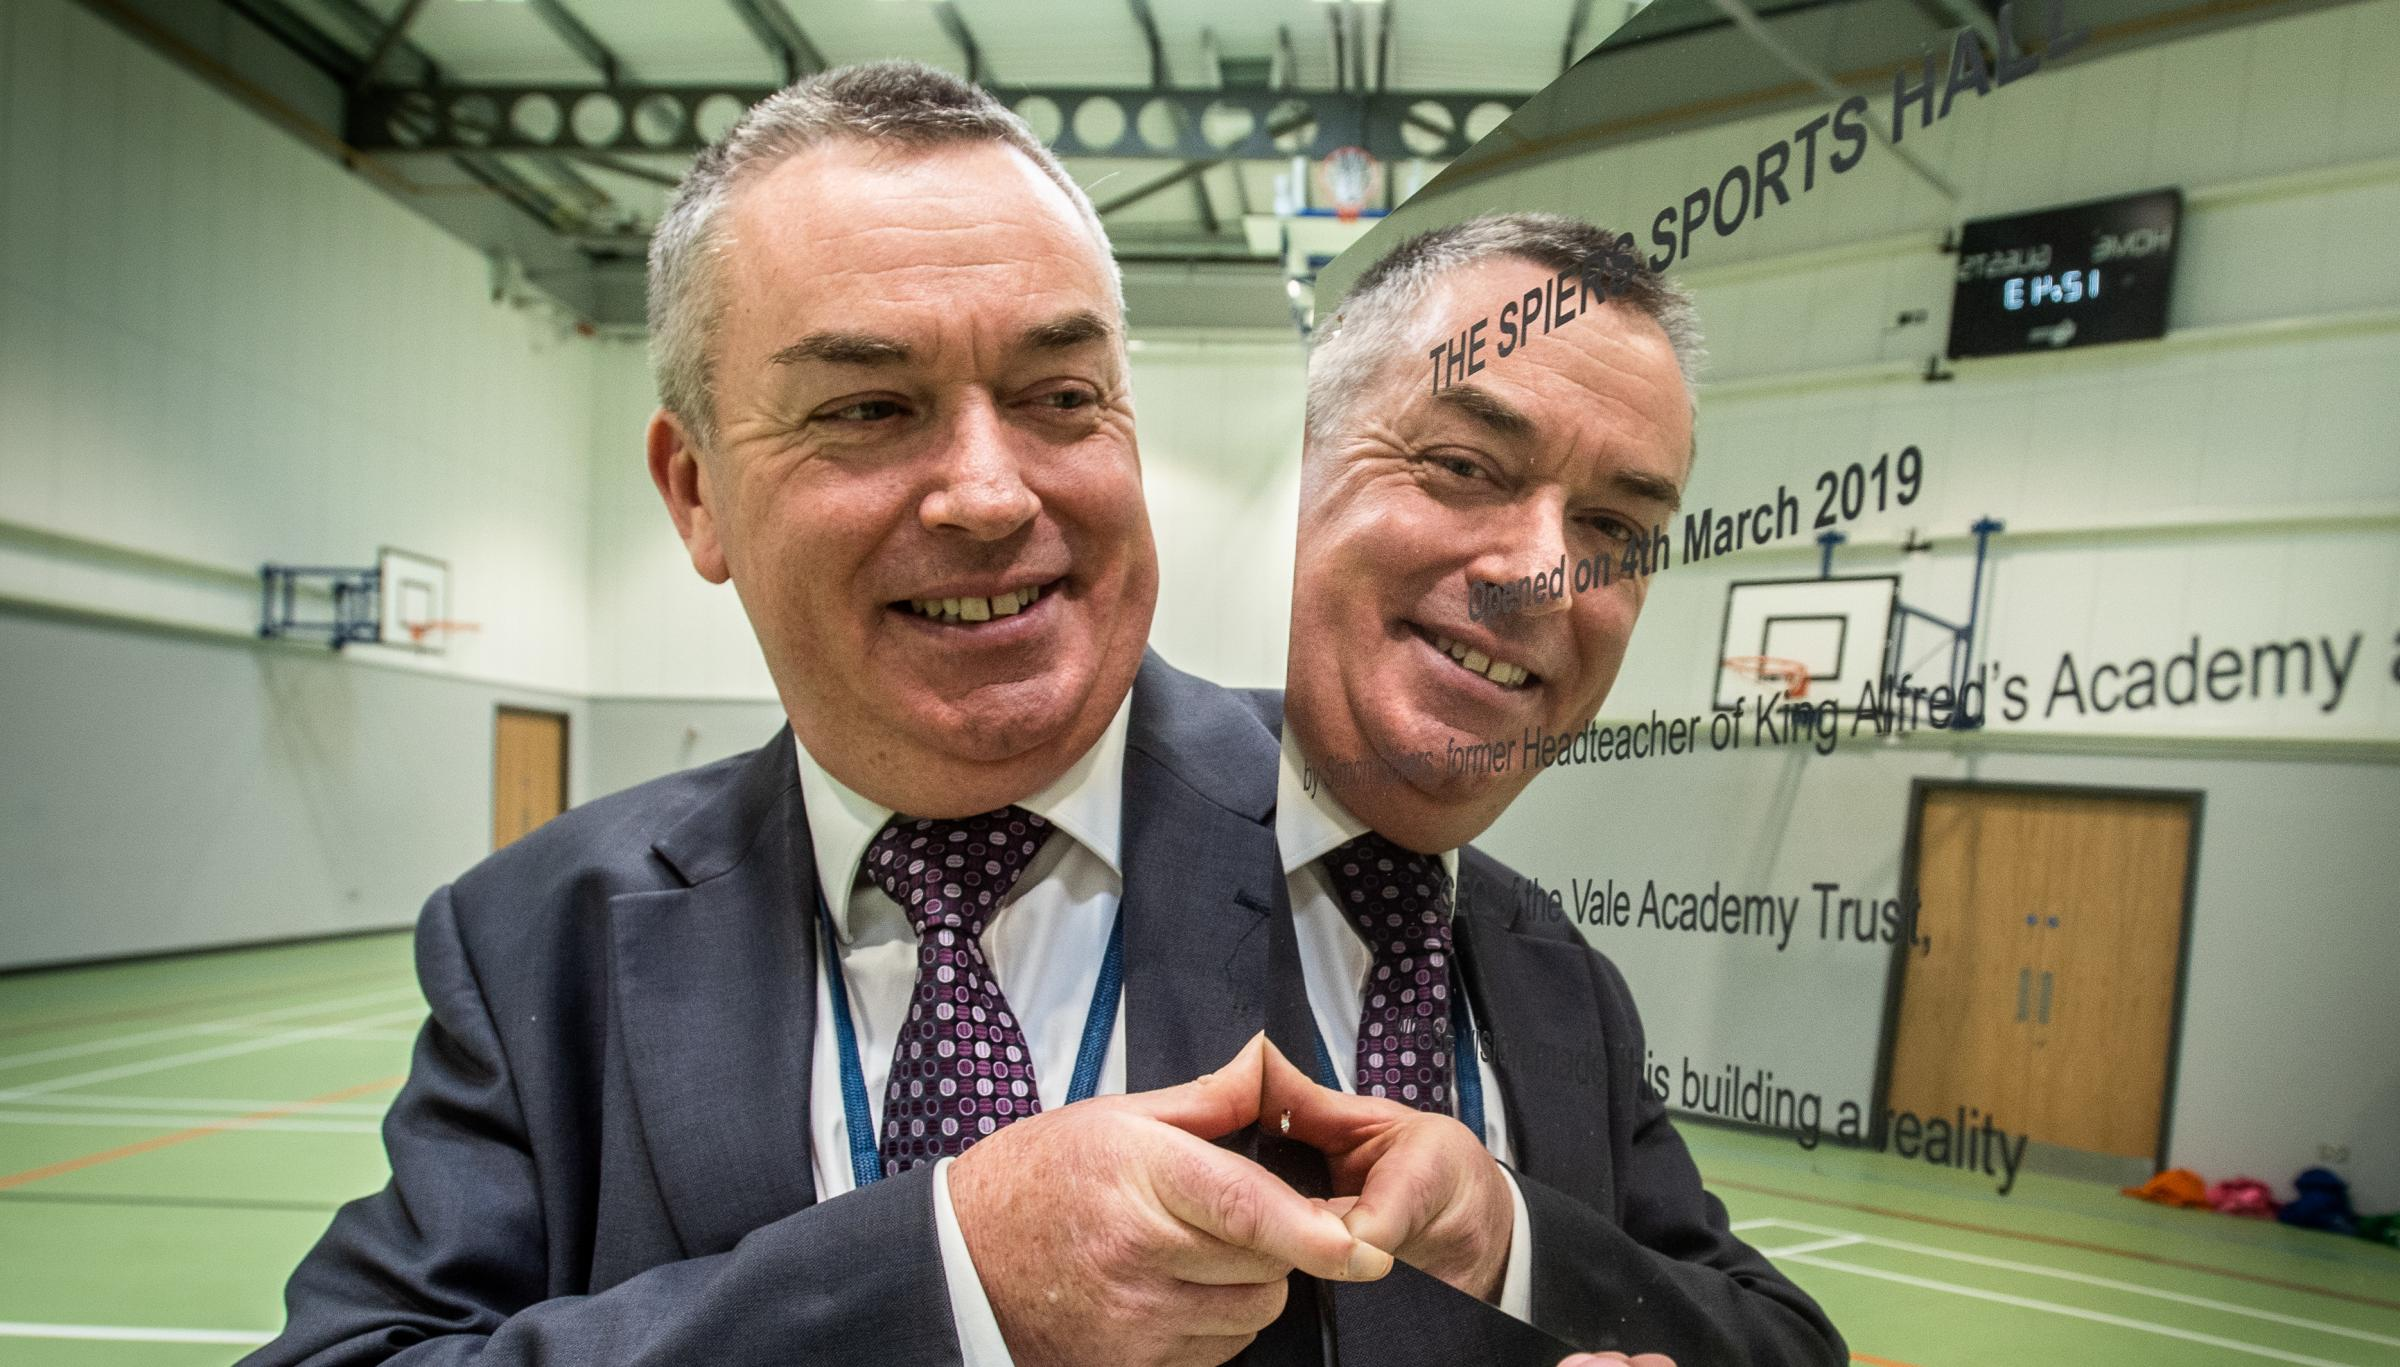 Simon Spiers, former King Alfred's head and CEO of Vale Academy Trust, is retiring. Pictured in the school's new sports hall, which has been named after him.